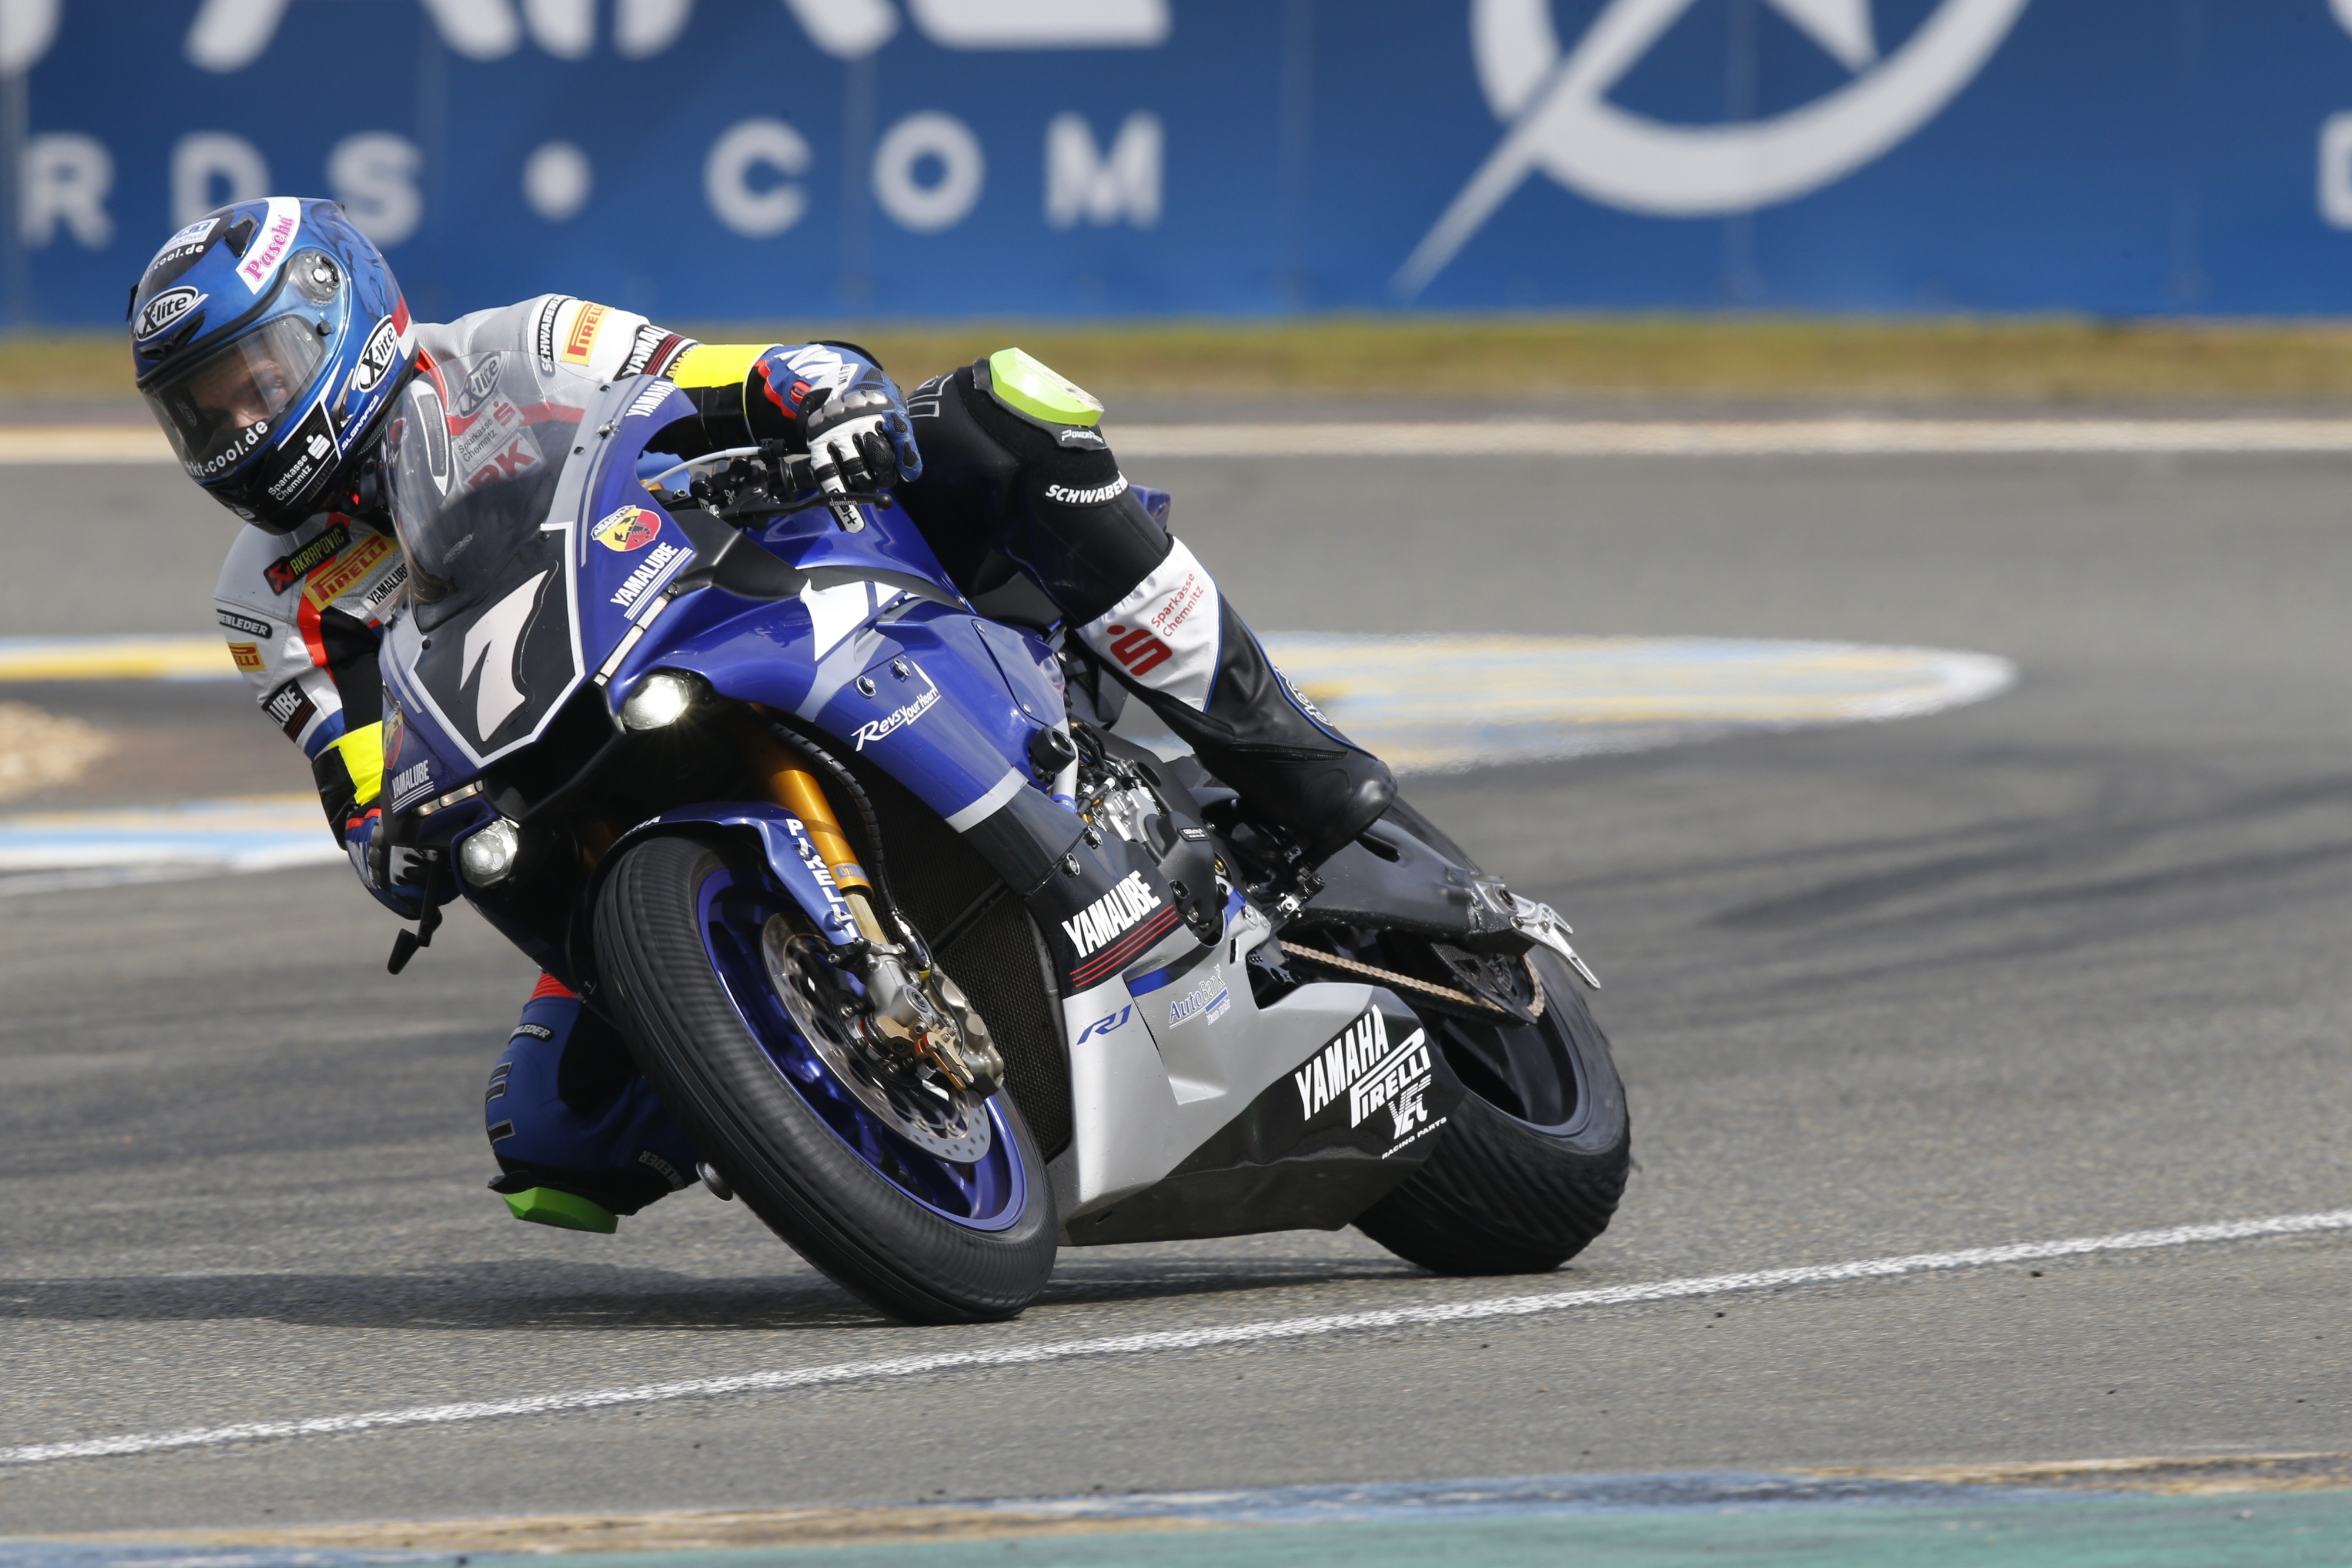 yamaha goes above and beyond in le mans 24h motos yamaha racing. Black Bedroom Furniture Sets. Home Design Ideas